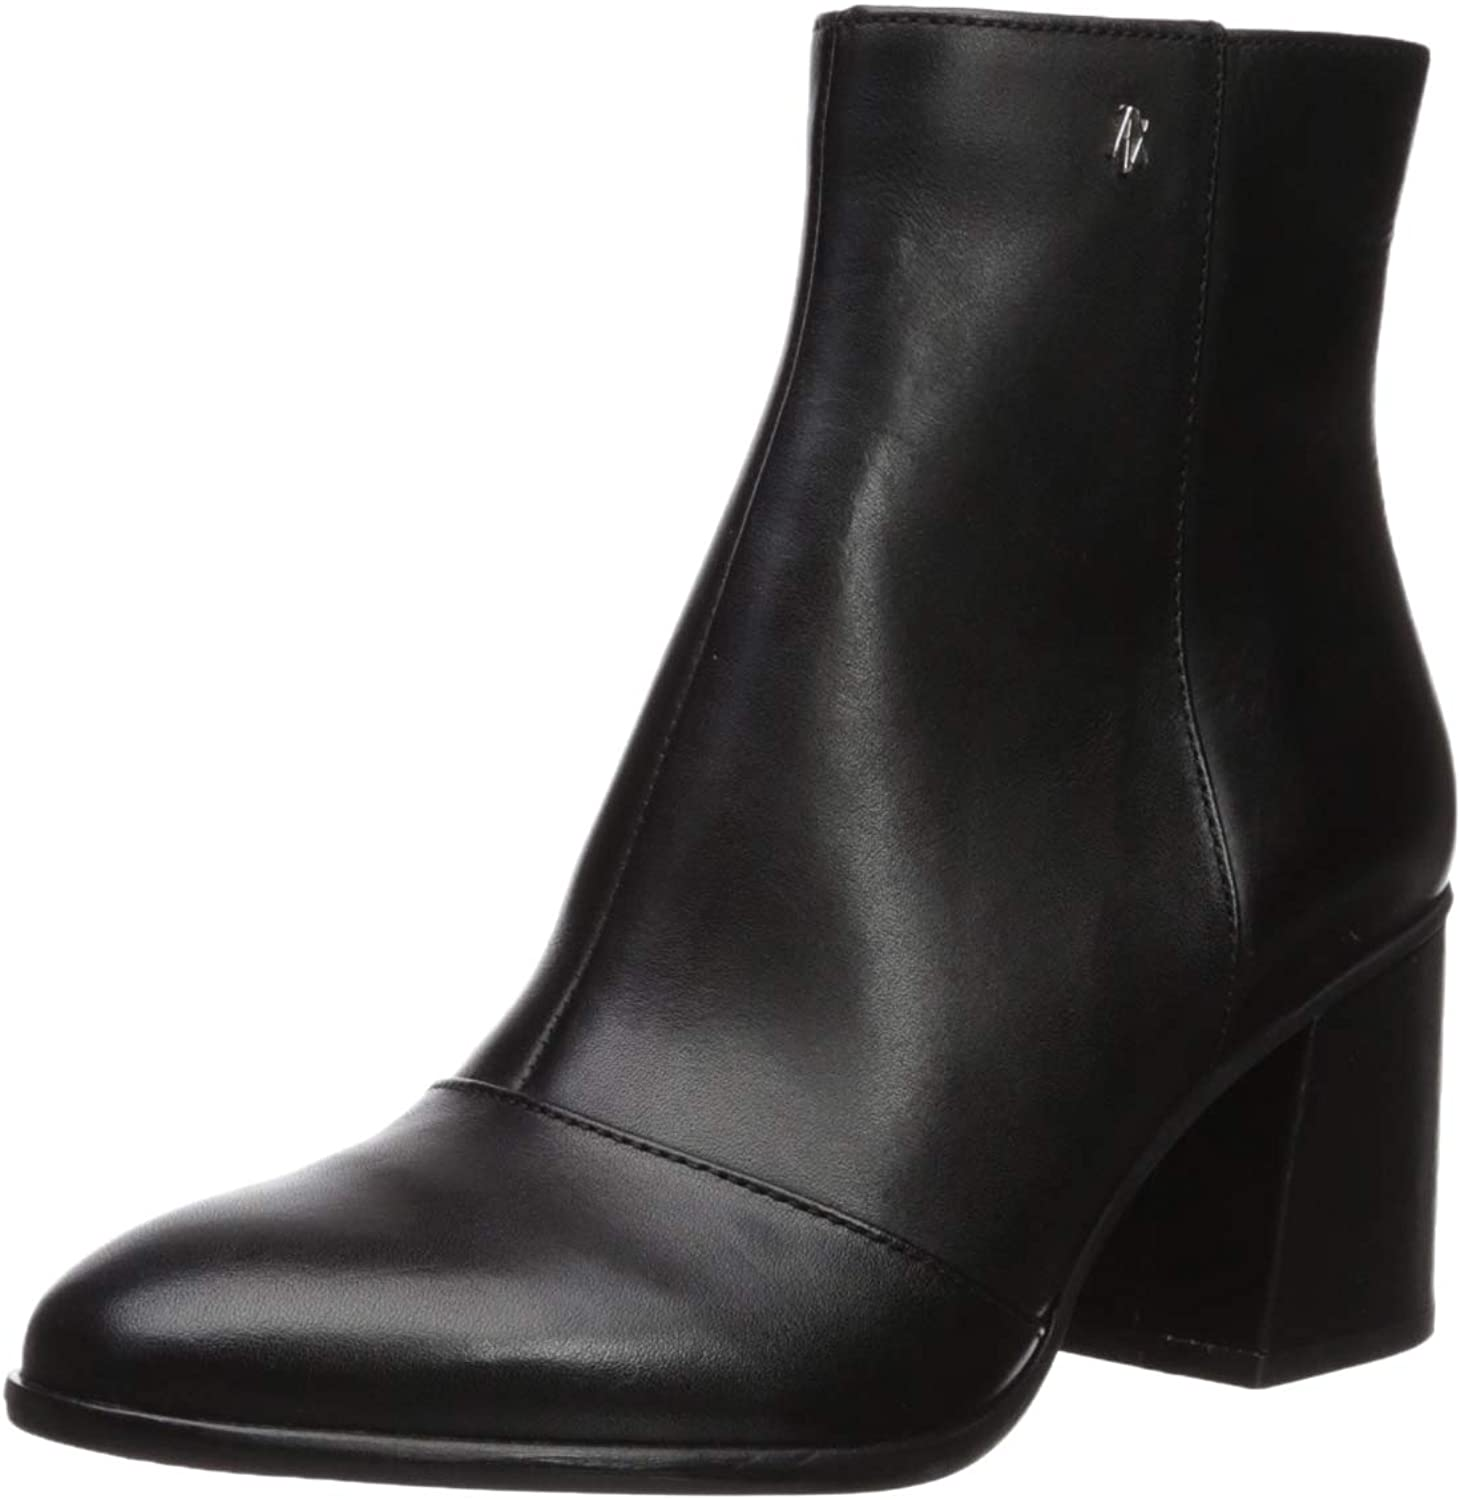 A X Armani Exchange Womens Smooth Leather Boot with Block Heel Fashion Boot